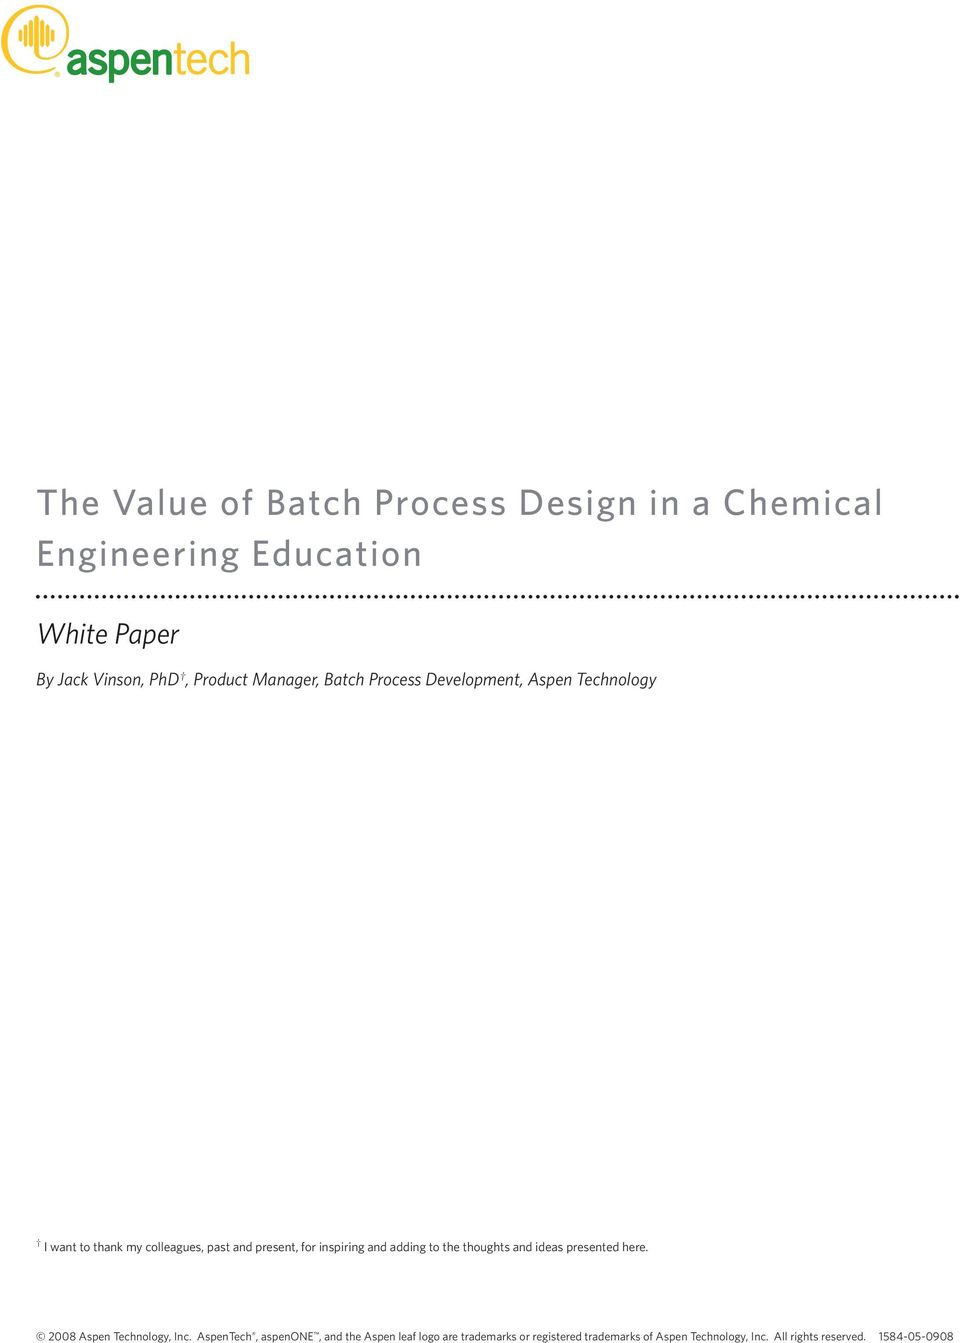 White Paper  By Jack Vinson, PhD, Product Manager, Batch Process